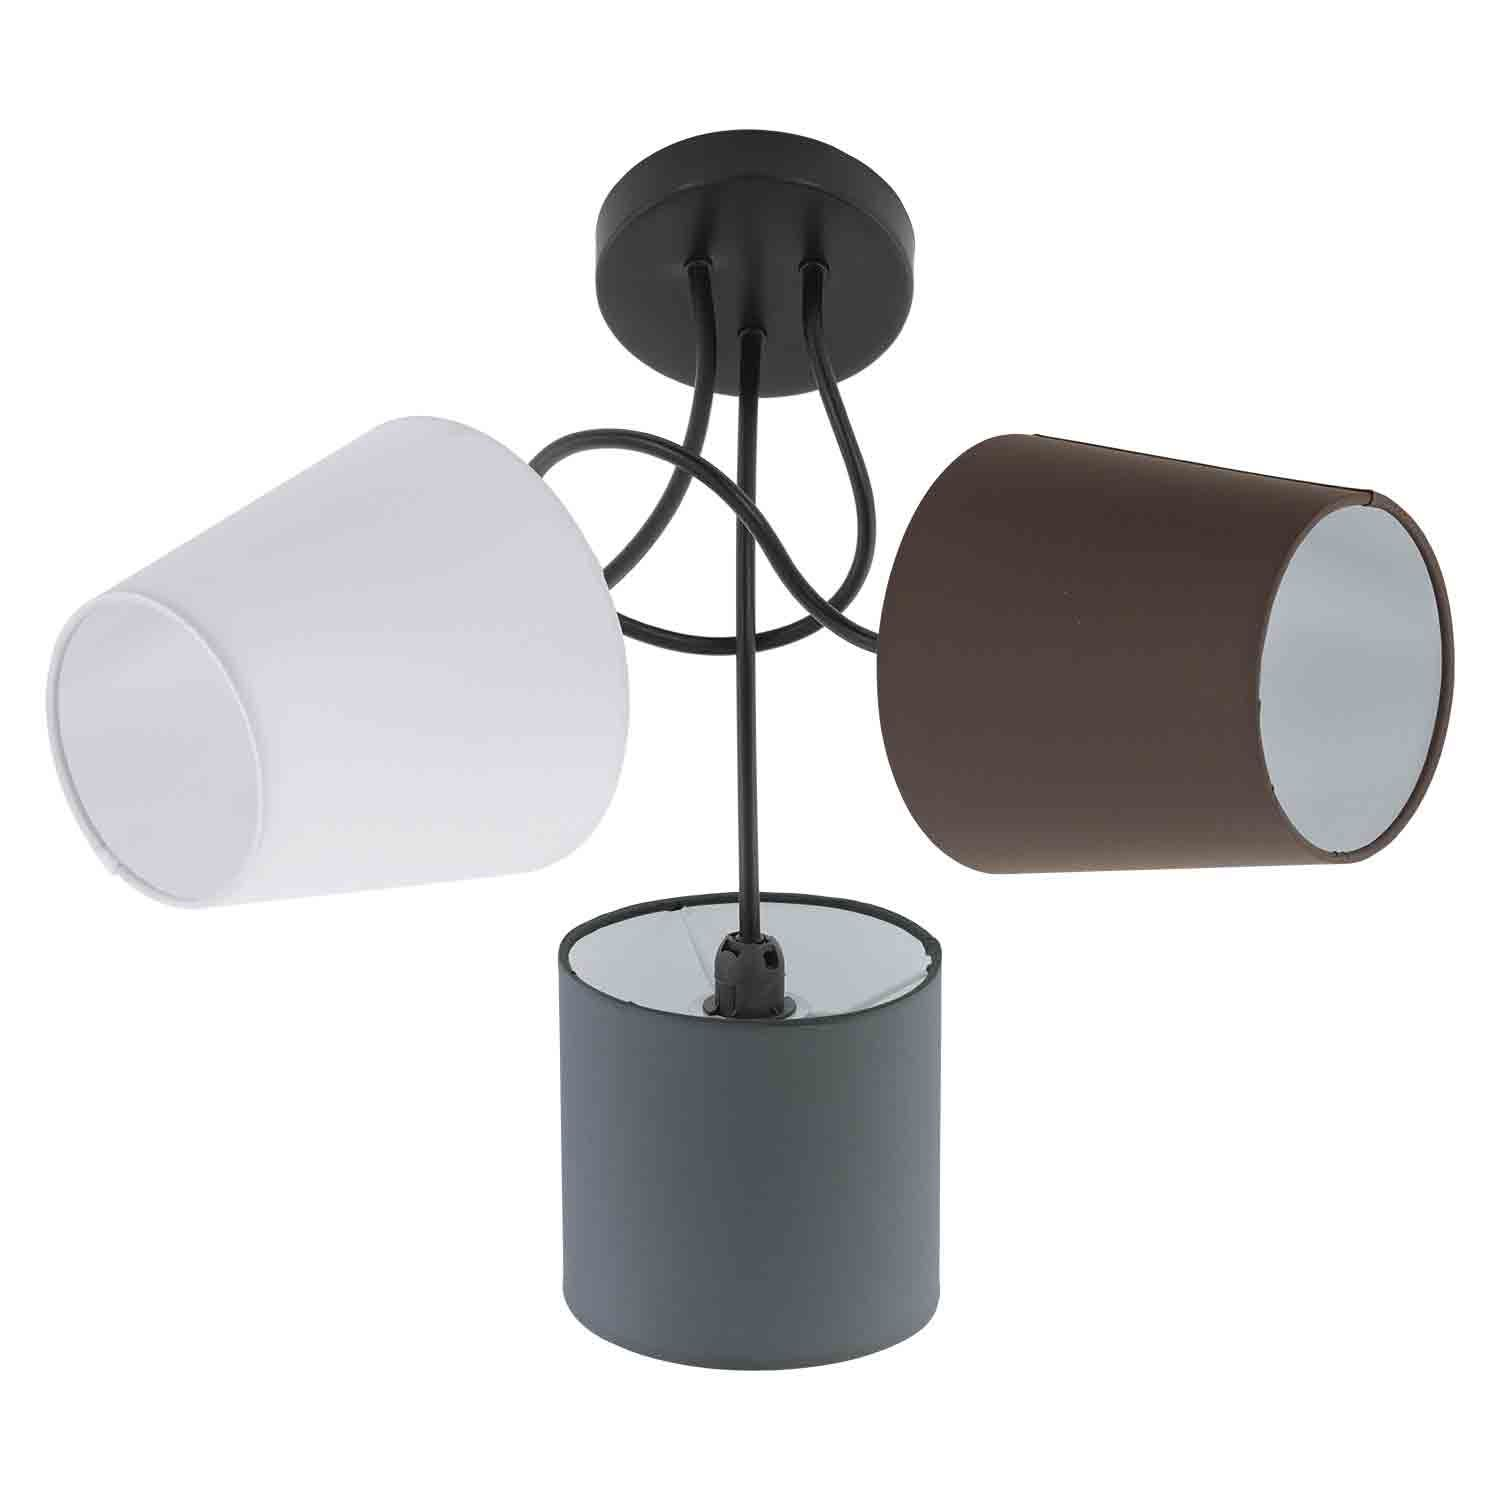 ALMEIDA Ceiling Light 3 Light Black